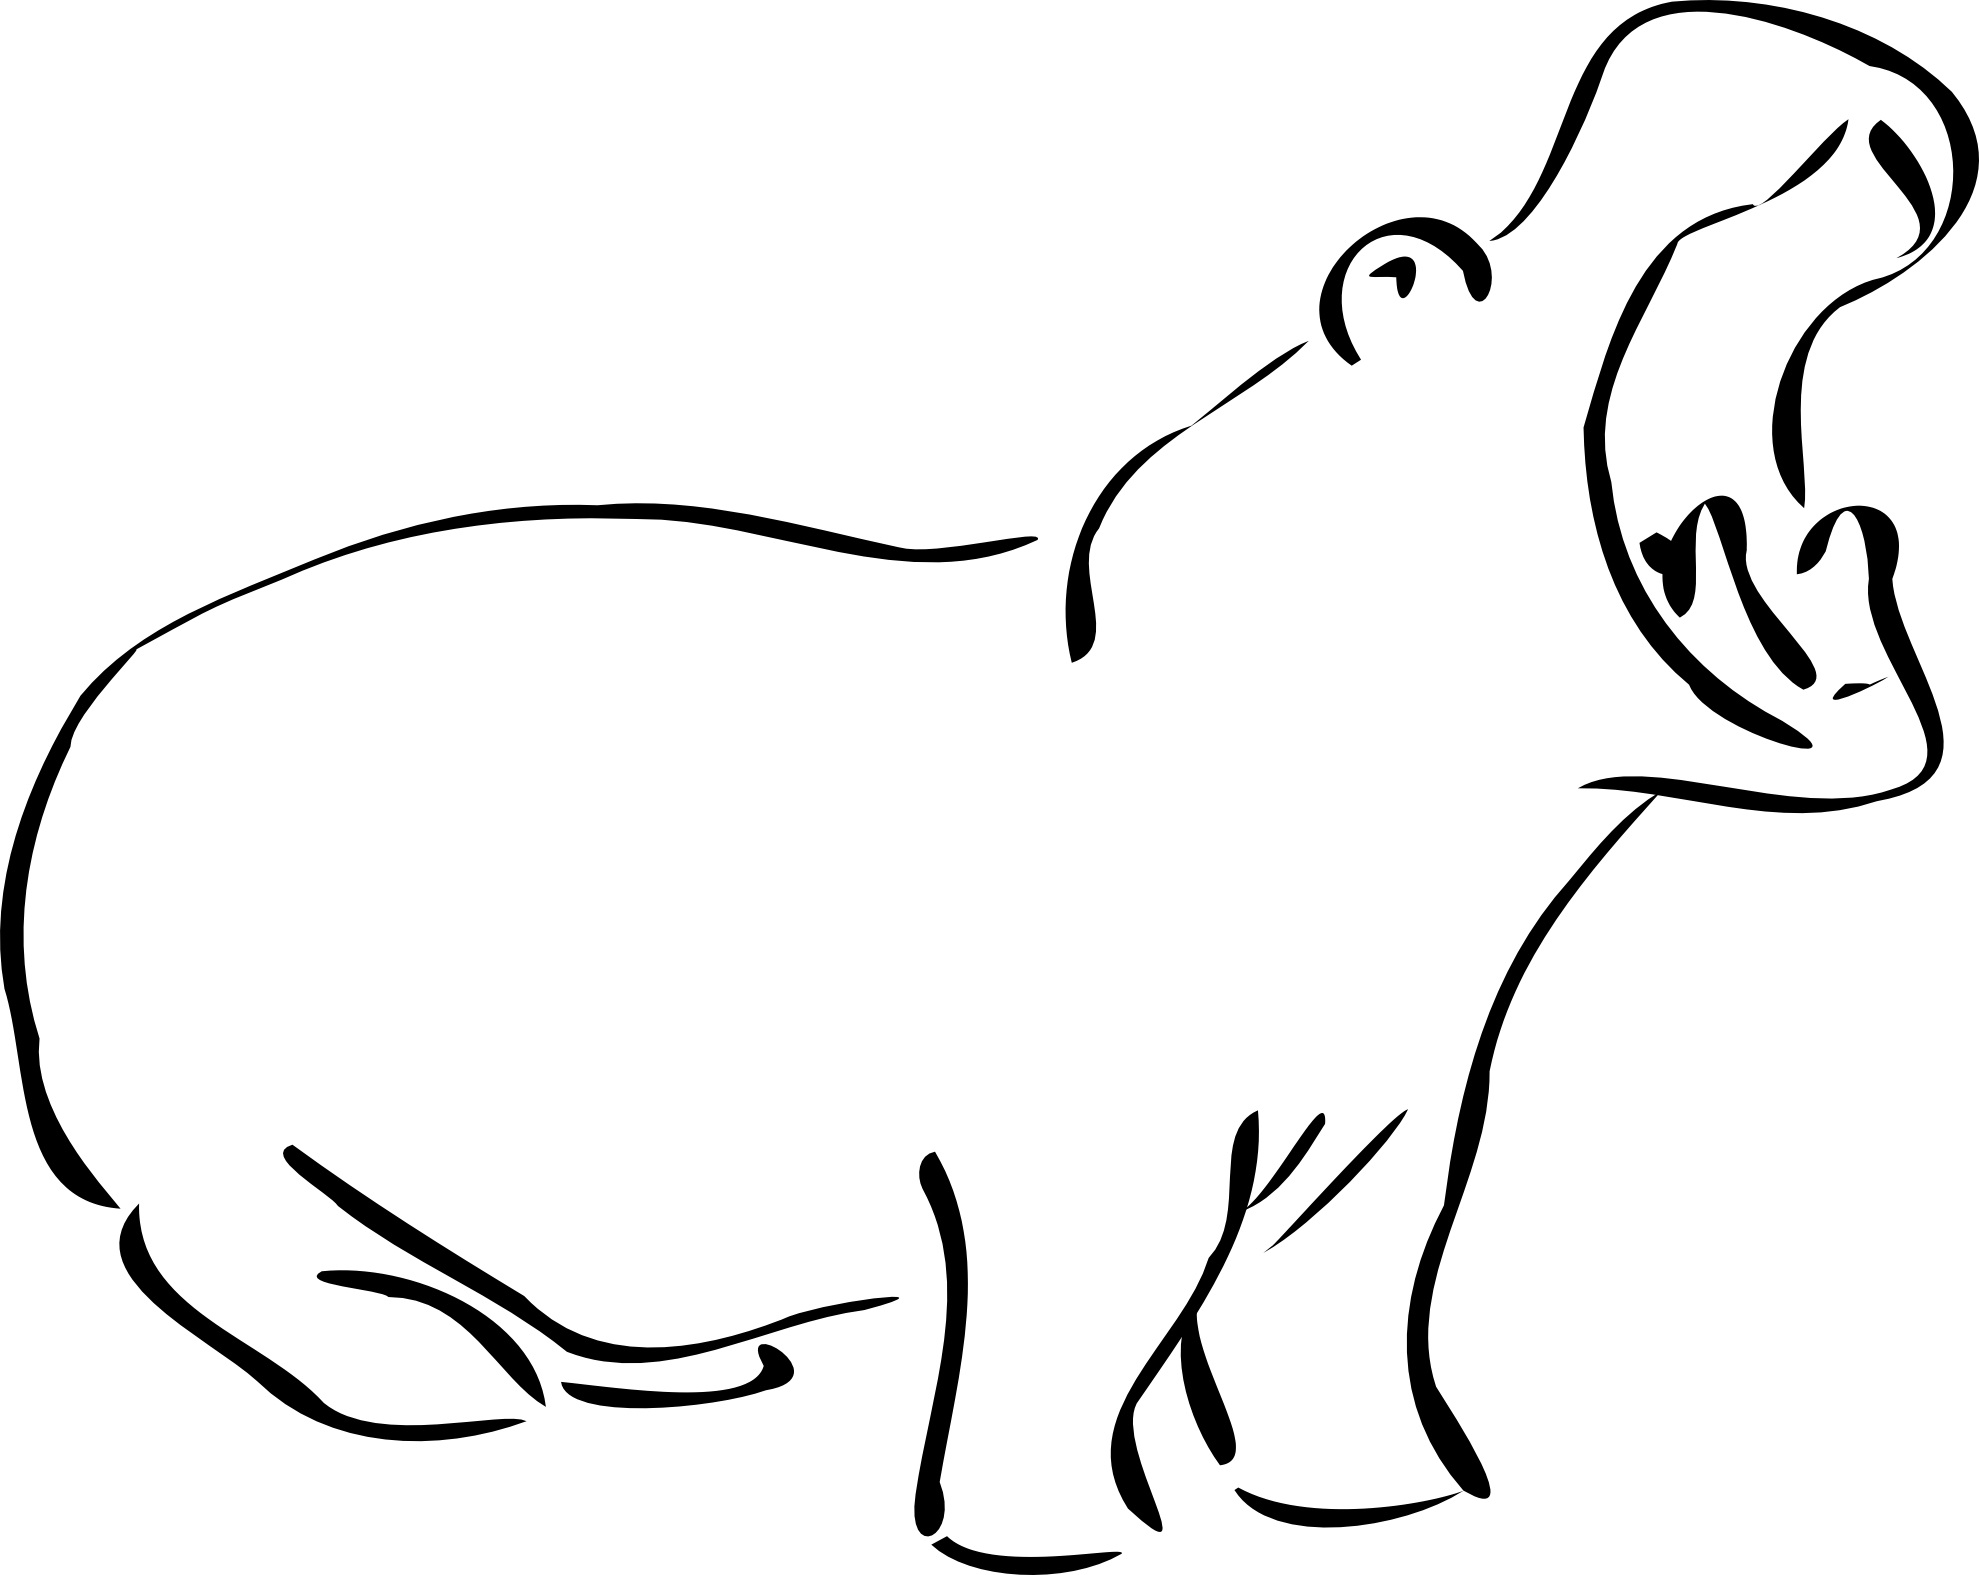 Coloring pages: Coloring pages: Hippopotamus, printable for kids ... | 1575x1979